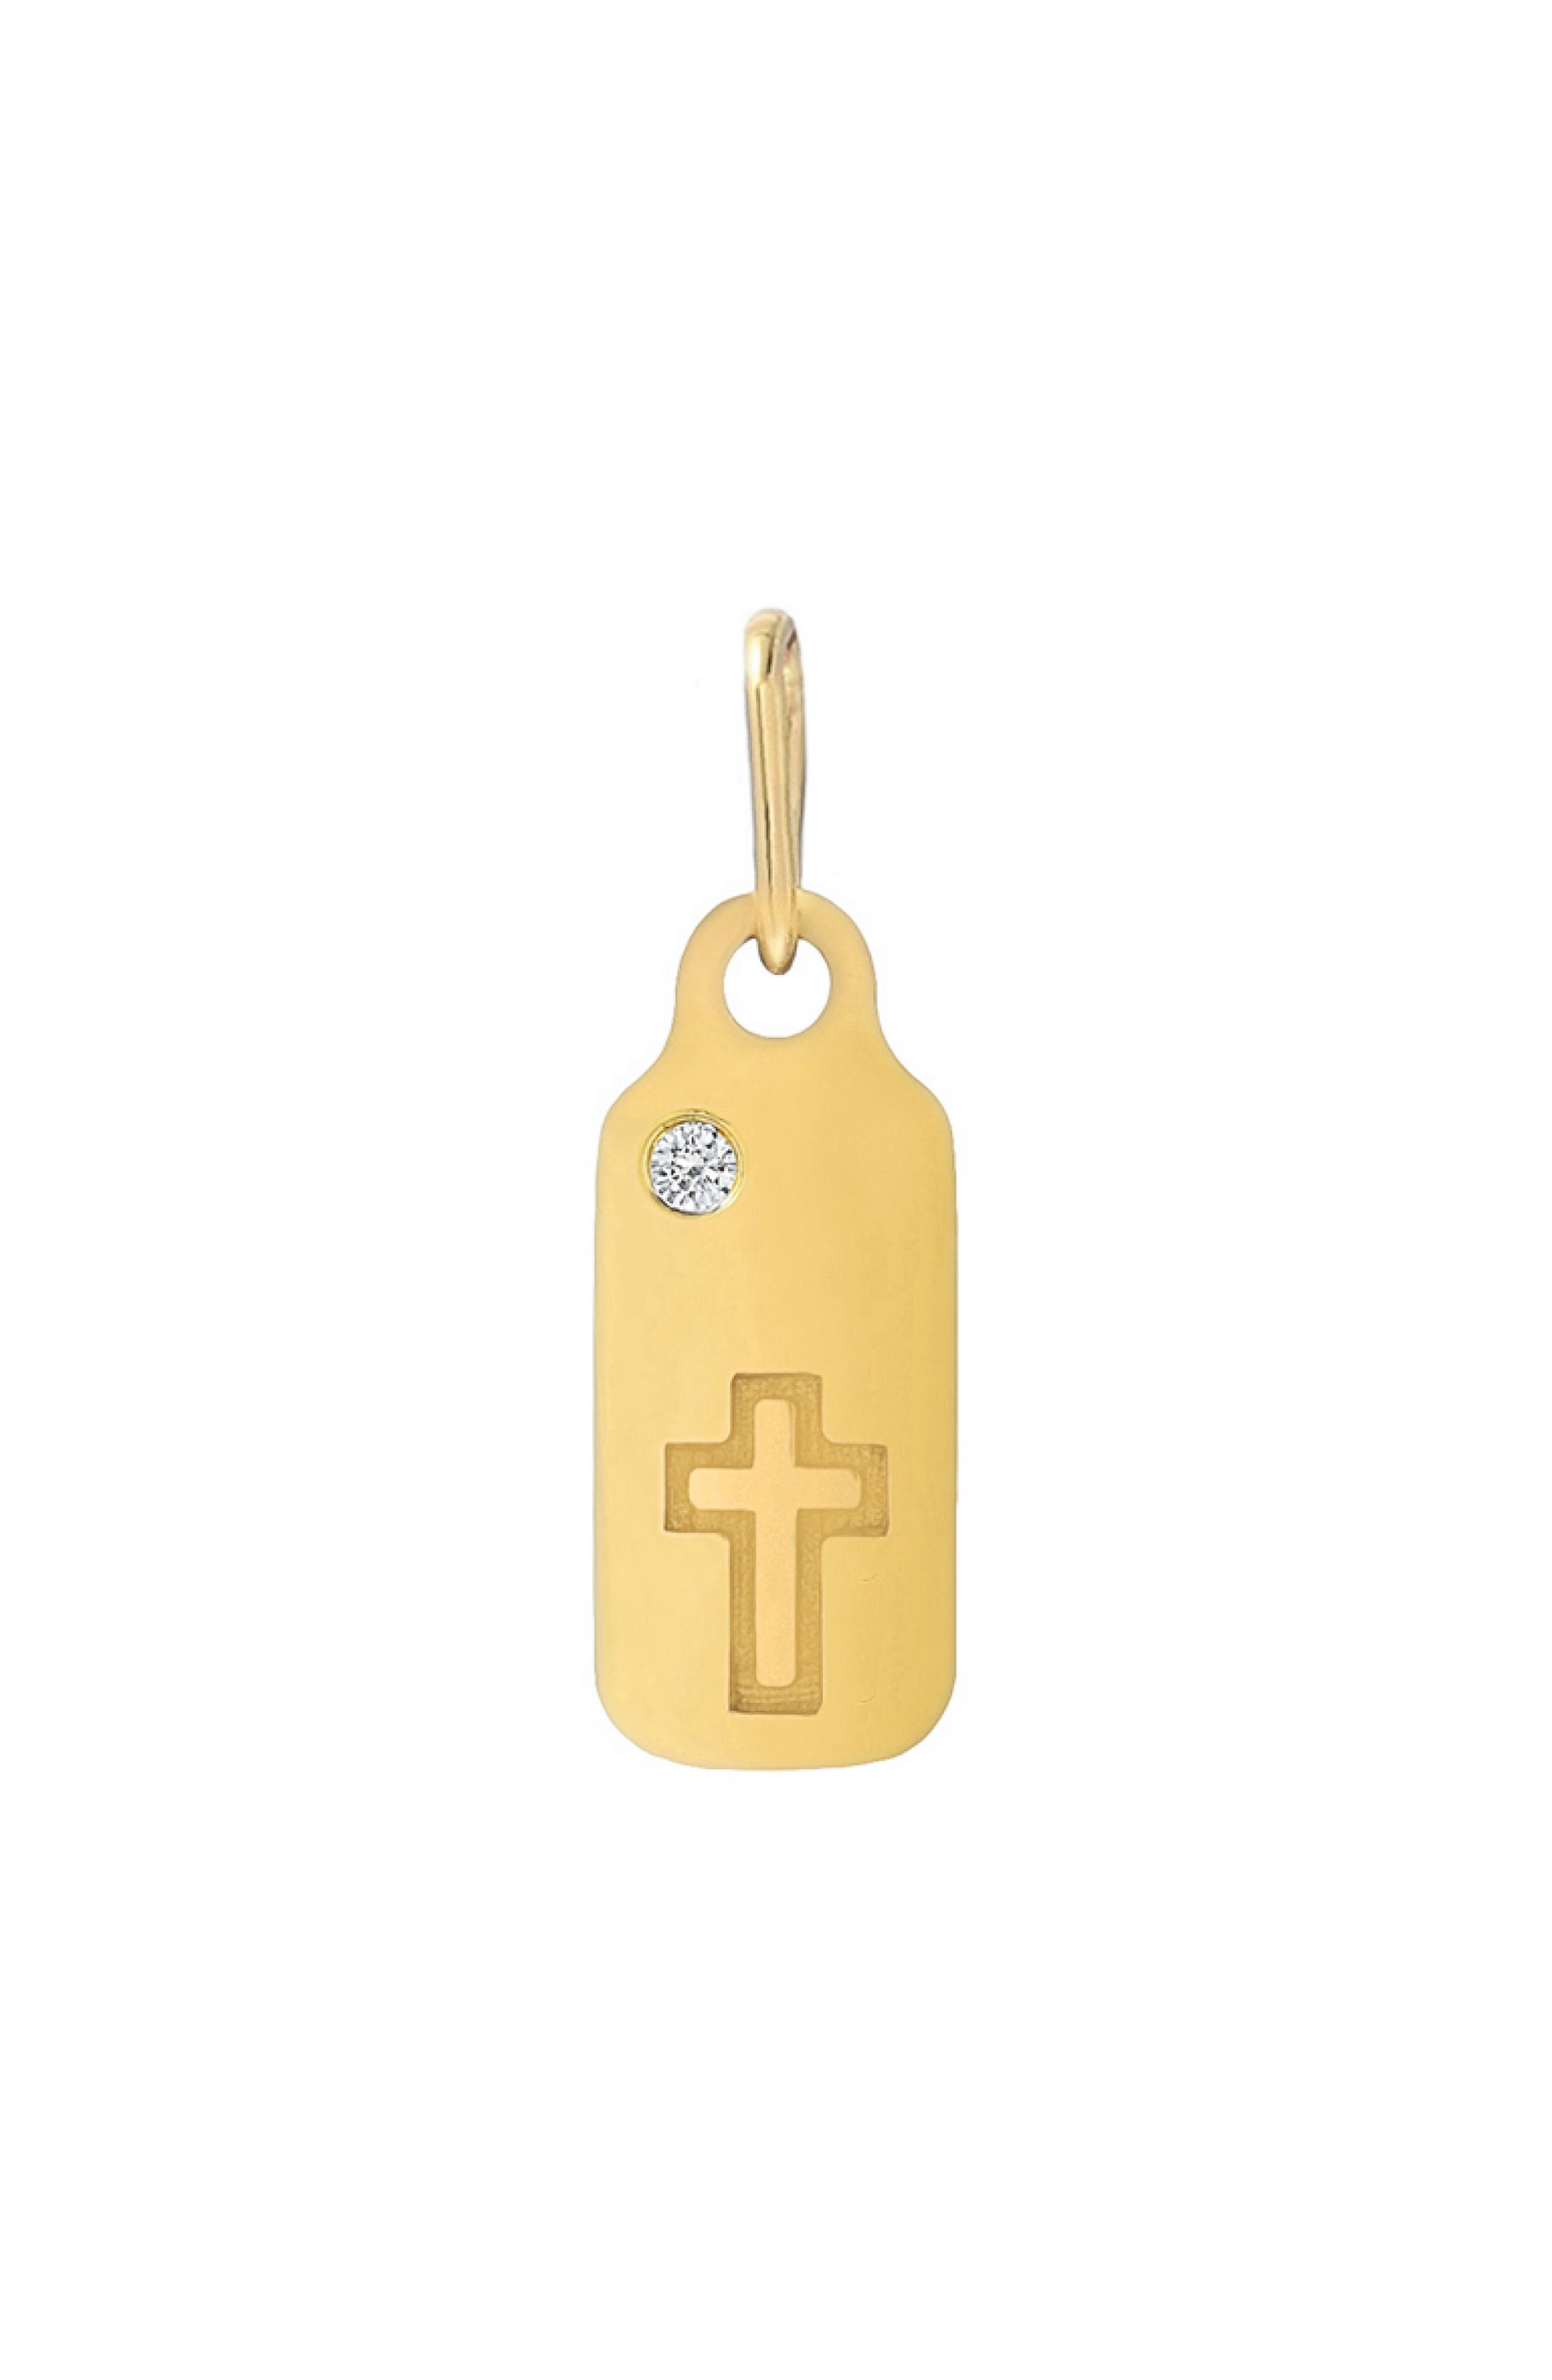 This trendworthy dog tag handcrafted in California from 14-karat gold is illuminated with a cross and a bezel-set diamond. Style Name: Mini Mini Jewels Icons - Cross Diamond Dog Tag. Style Number: 5750645. Available in stores.